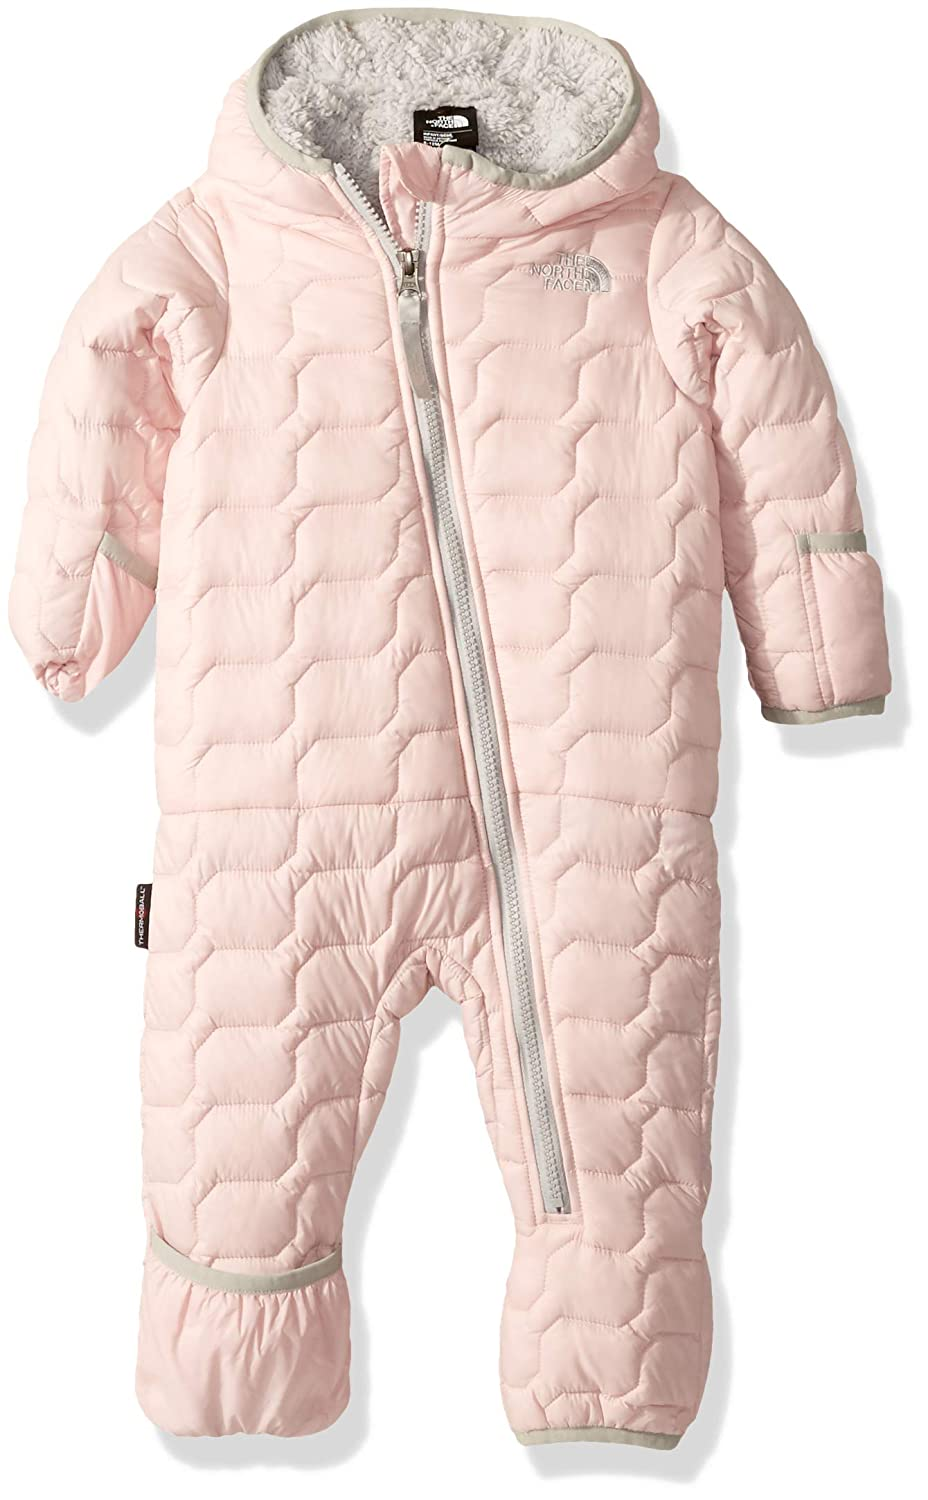 747fbd875 Amazon.com  The North Face Infant Thermoball Bunting - Purdy Pink ...